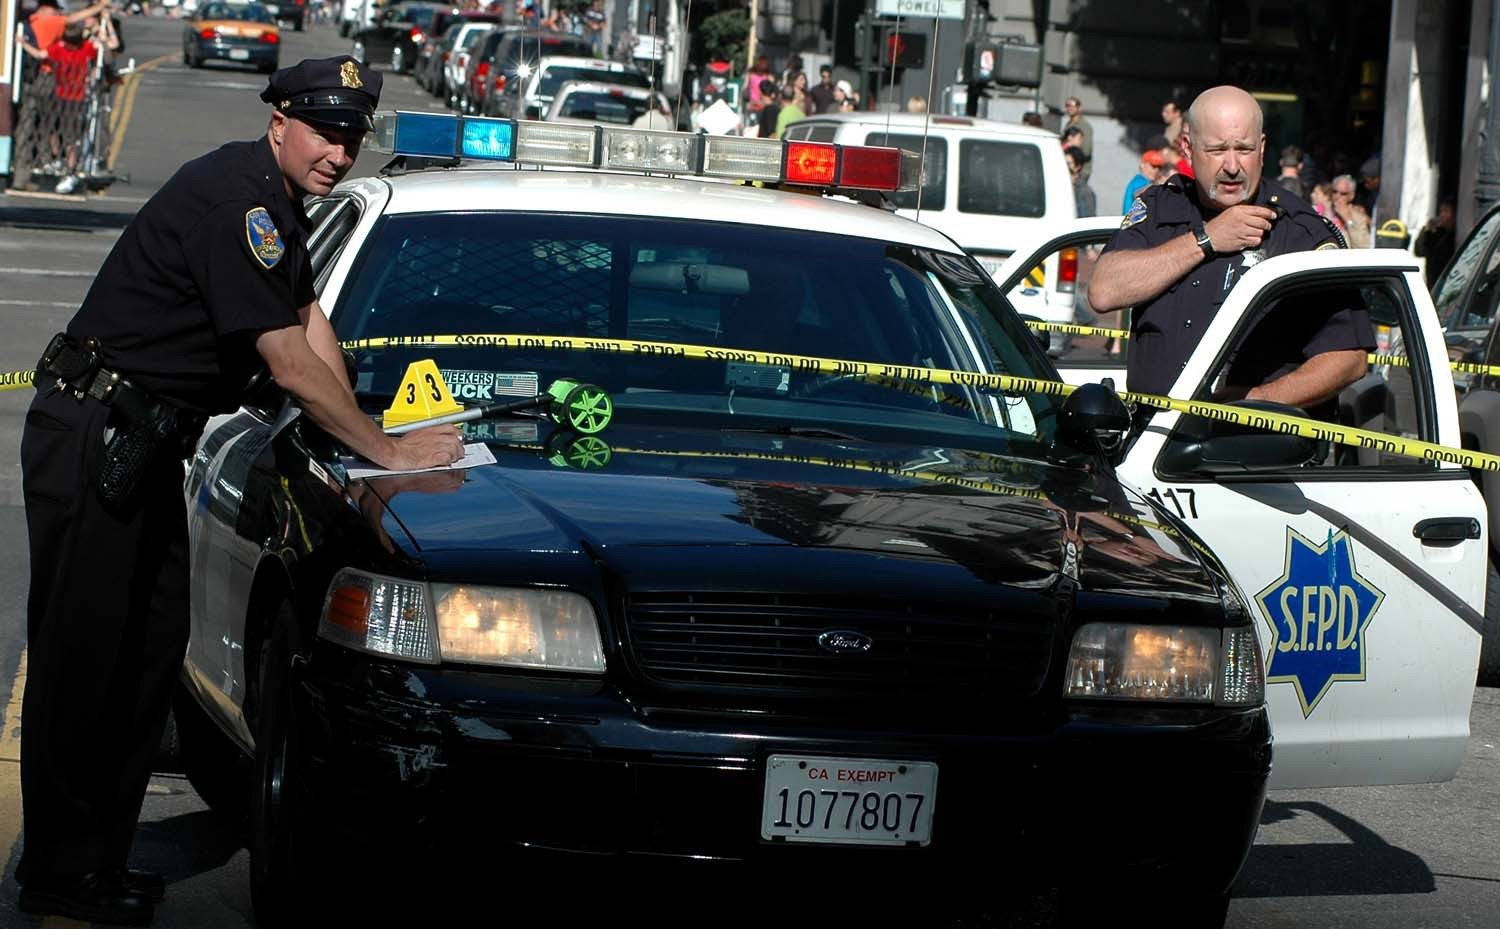 S.F. Examiner file photoSan Francisco police arrested a man and charged him with attempted homicide after allegedly beating a man who urinated on a carpet.